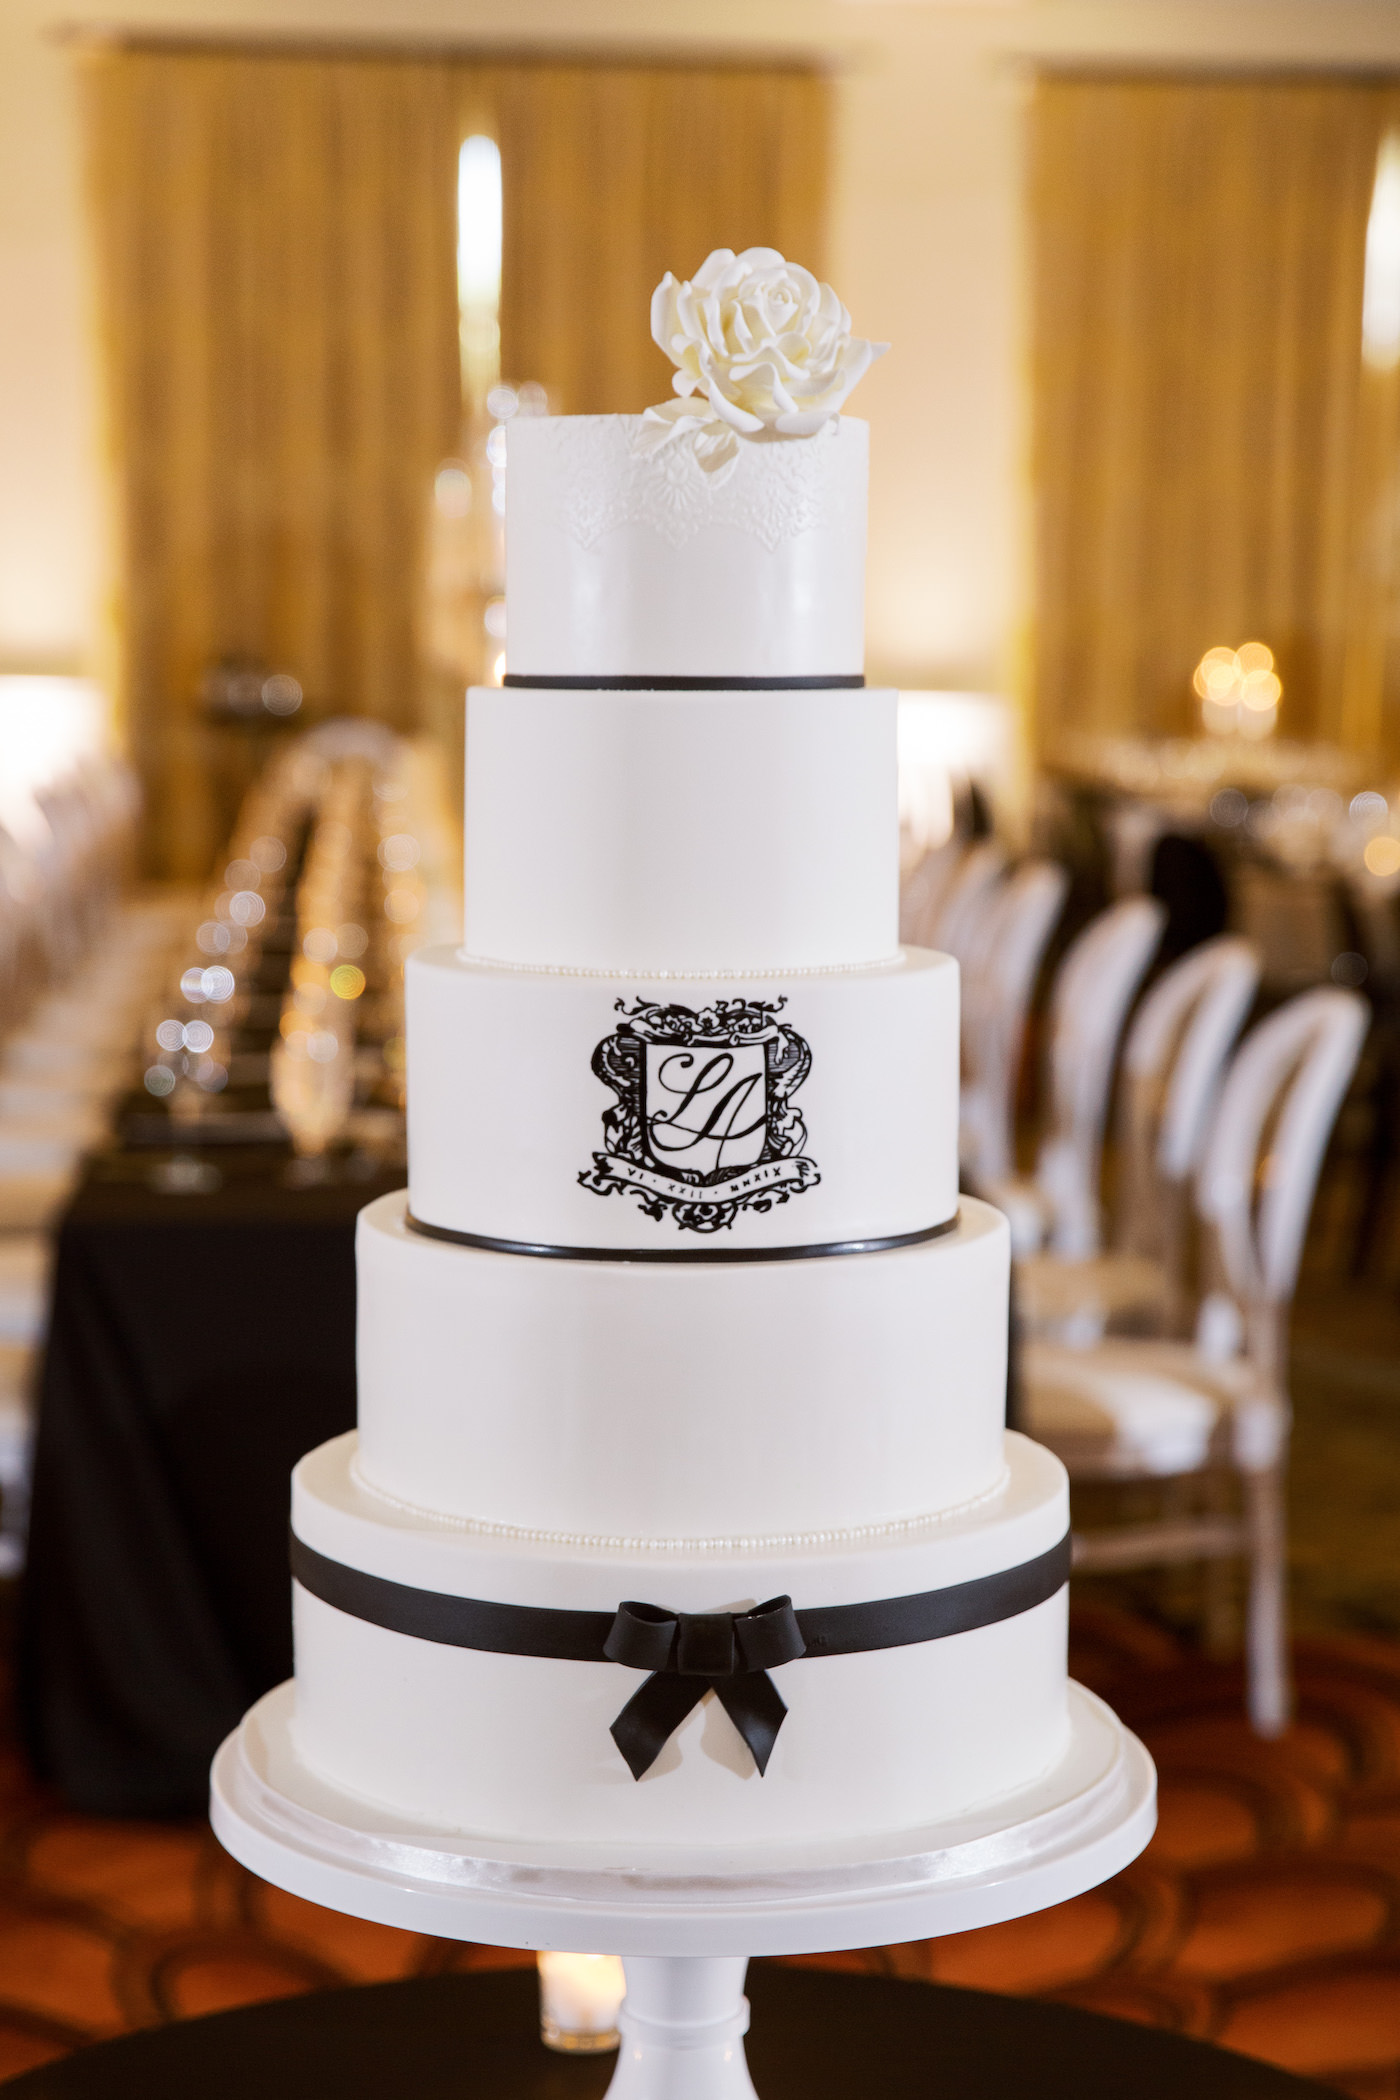 Classic Timeless Elegant White Five Tier Wedding Cake with Black Ribbon and Custom Monogram, White Rose Cake Topper | Tampa Bay Wedding Planner Parties A'la Carte